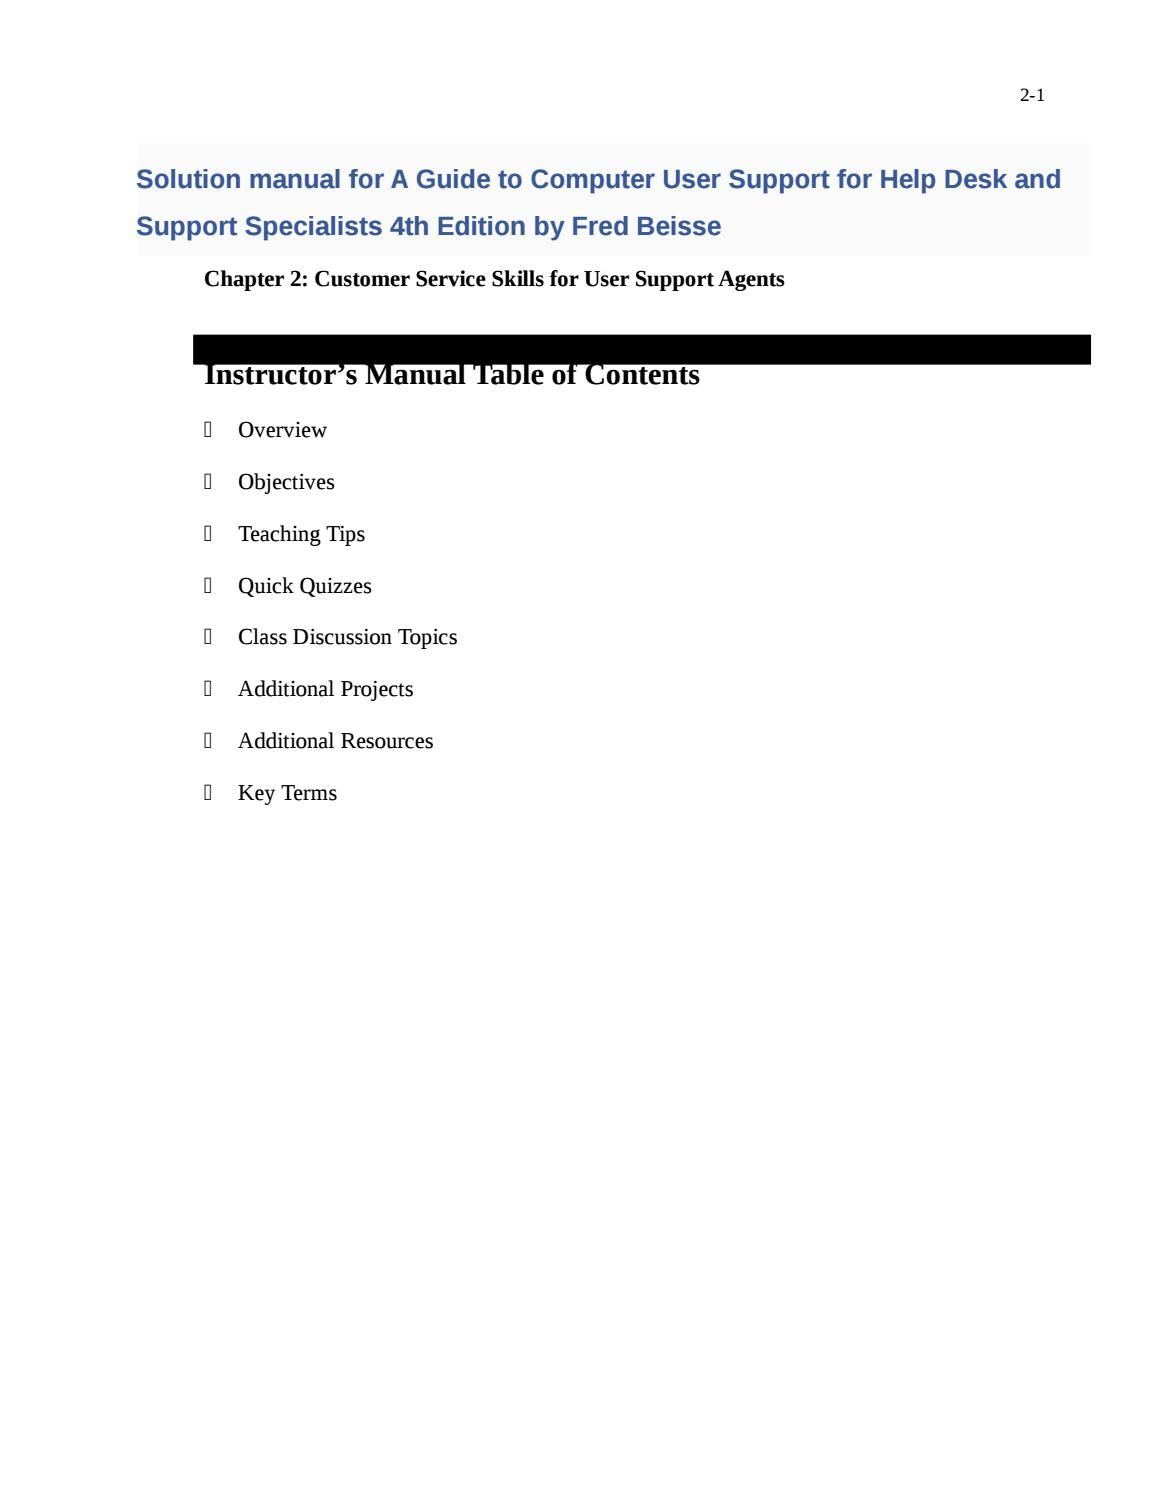 Solutions manual for a guide to computer user support for help desk and  support specialists 4th edit